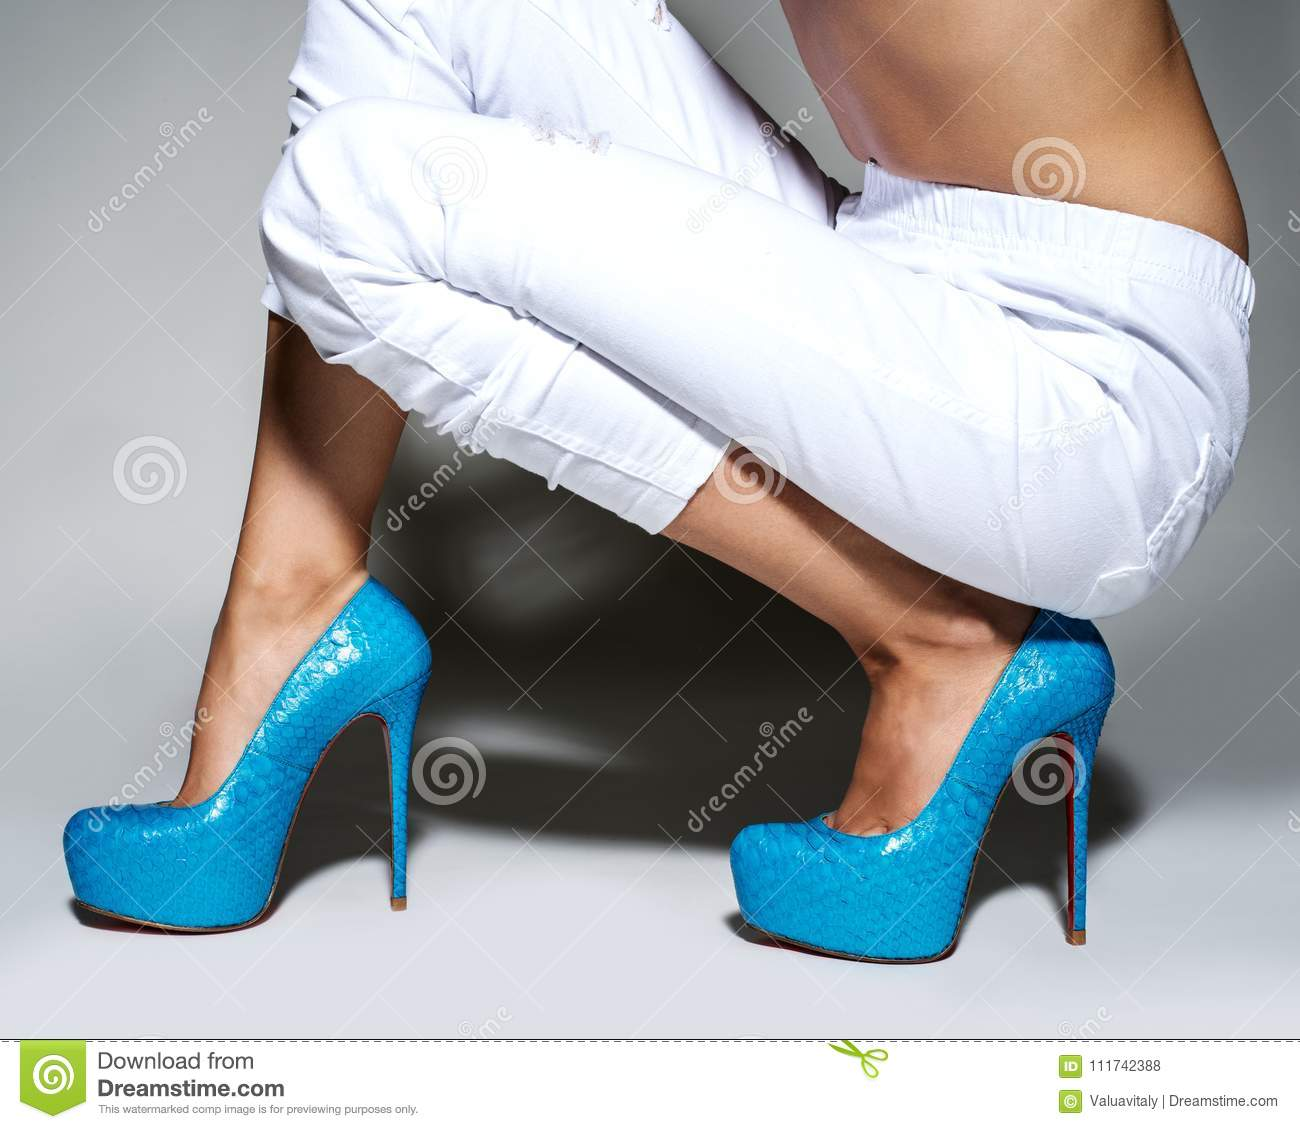 f791e3eaaa Part of woman legs in beautiful fashionable high heels. Stylish female  shoes.